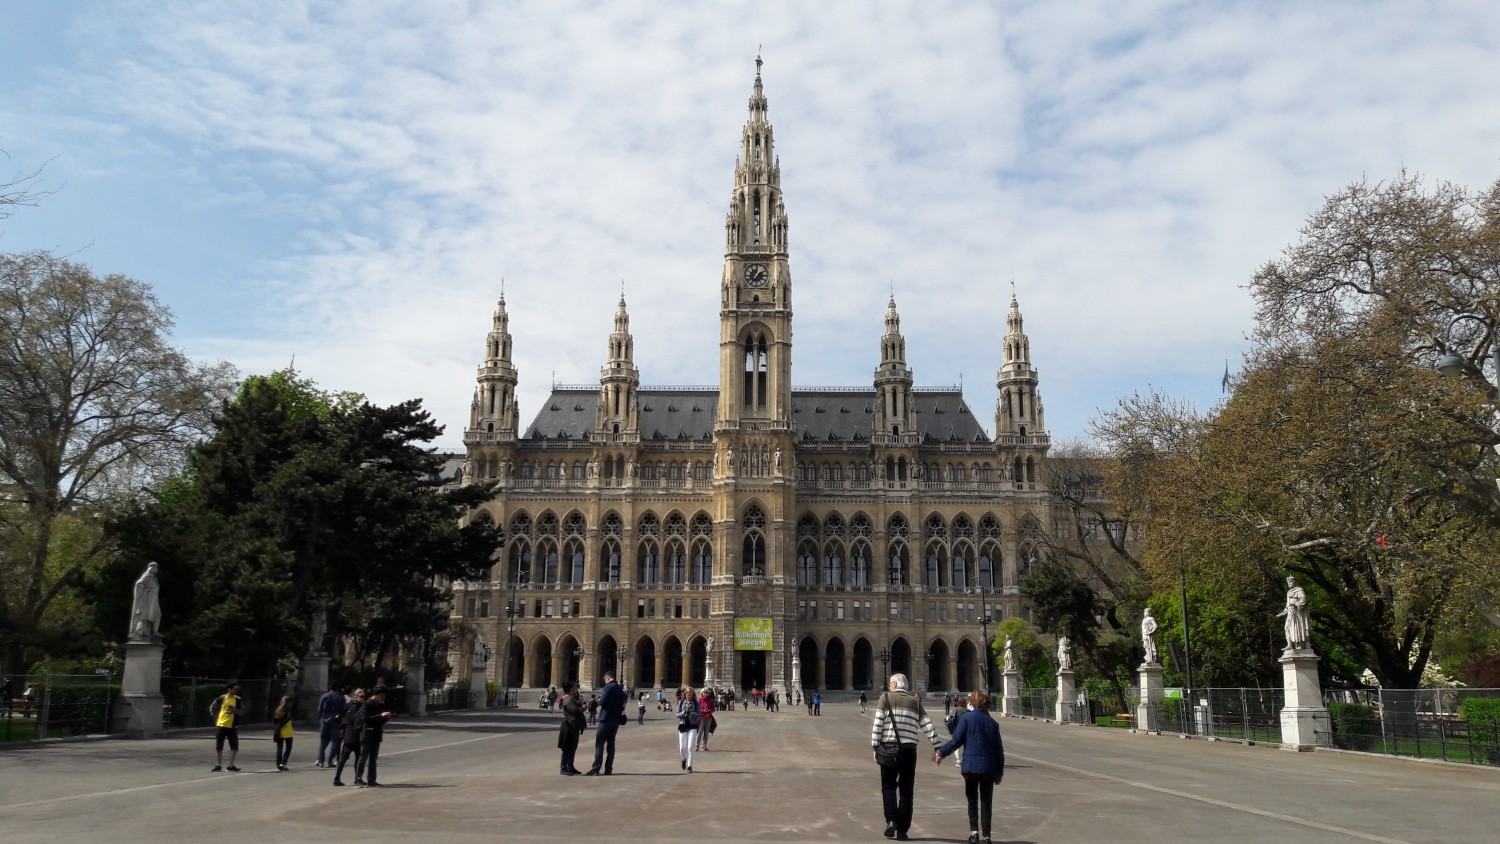 The city hall - this is also the place where Vienna Open is played!